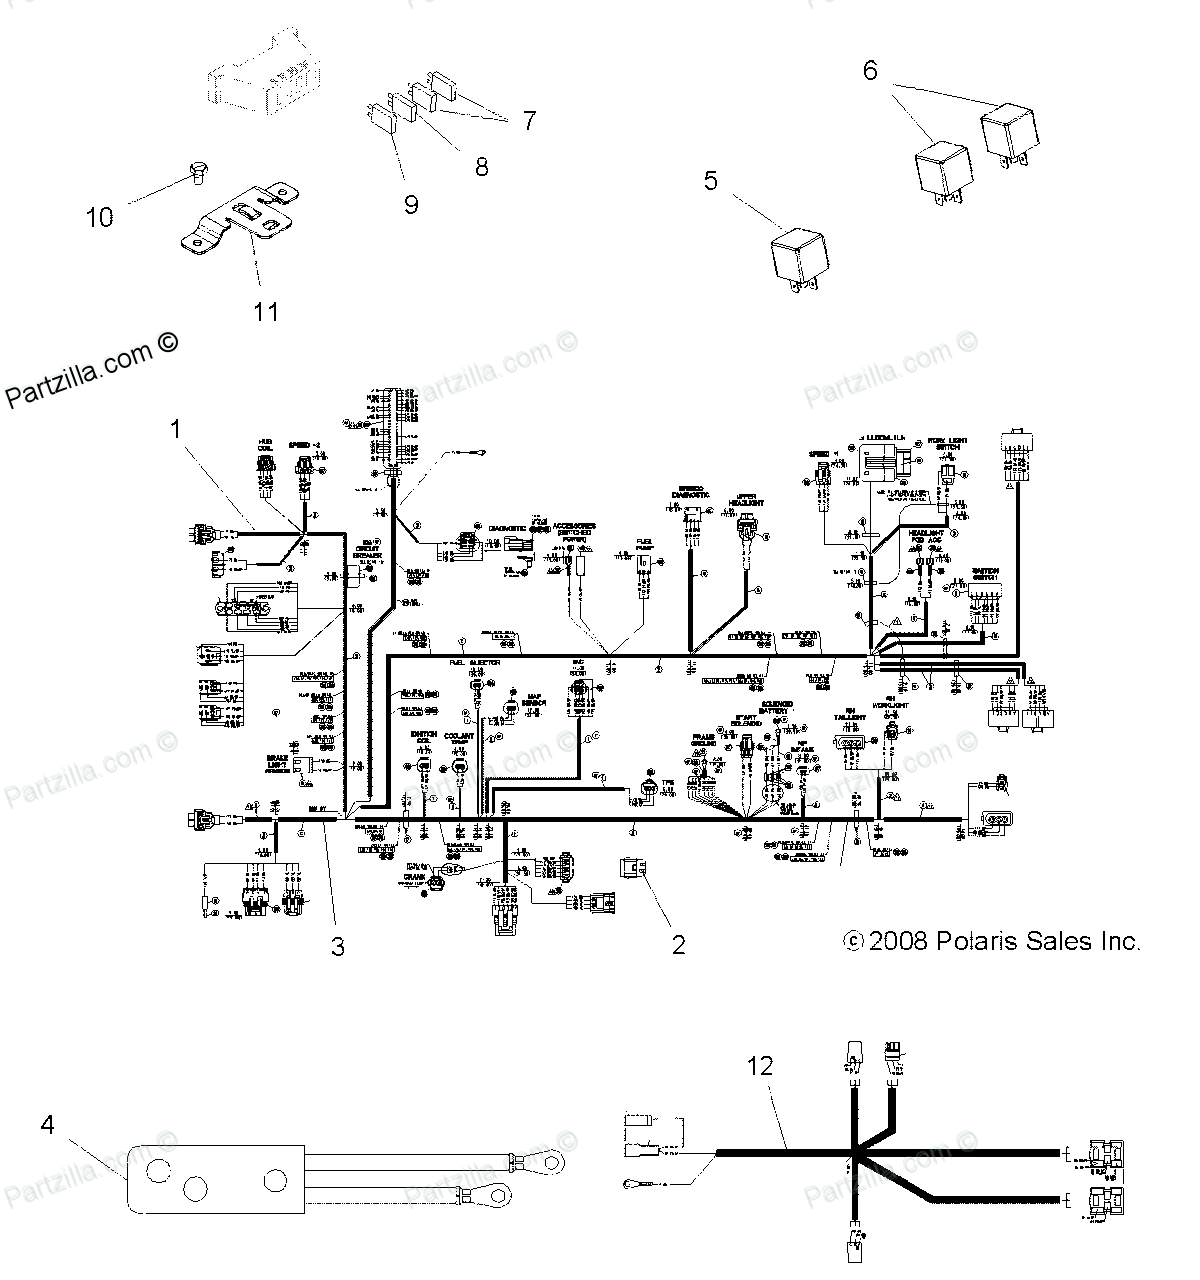 2008 polaris sportsman 800 twin wiring diagram - auto ... polaris 600 classic wiring diagram 2008 gibson les paul classic wiring diagram #13